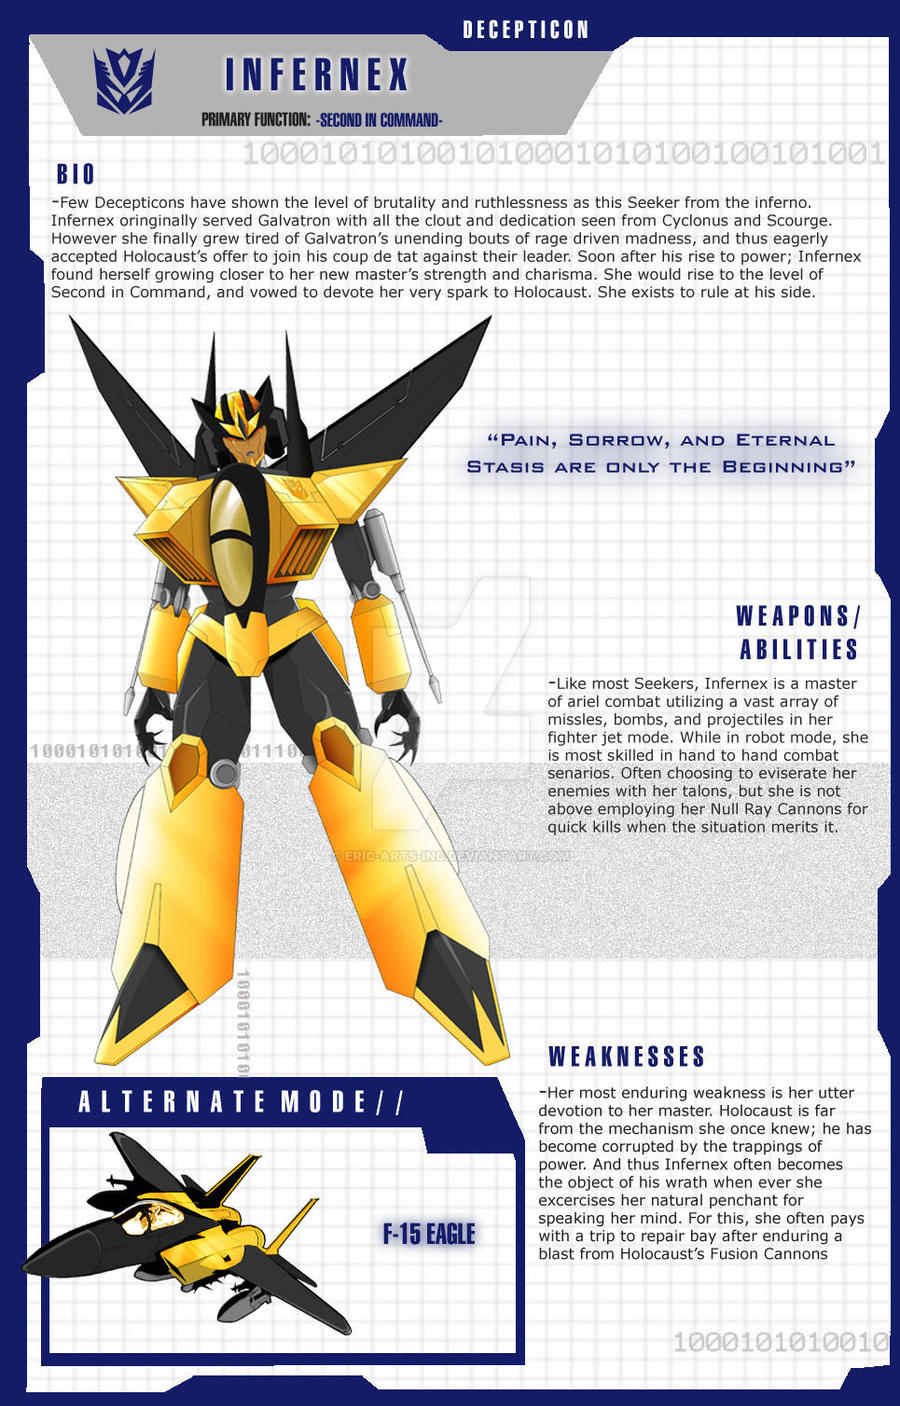 helicopter decepticon with Transformer Oc Infernex Character Sheet 365309369 on Transformer OC INFERNEX Character Sheet 365309369 moreover Mercedes Benz Amg Gt R Be es A Transformer In The Last Knight 116070501025 1 together with Blackout From Transformers 1 And 2 moreover Page7 furthermore Transformers The Last Knight Barricade 203111007 De.